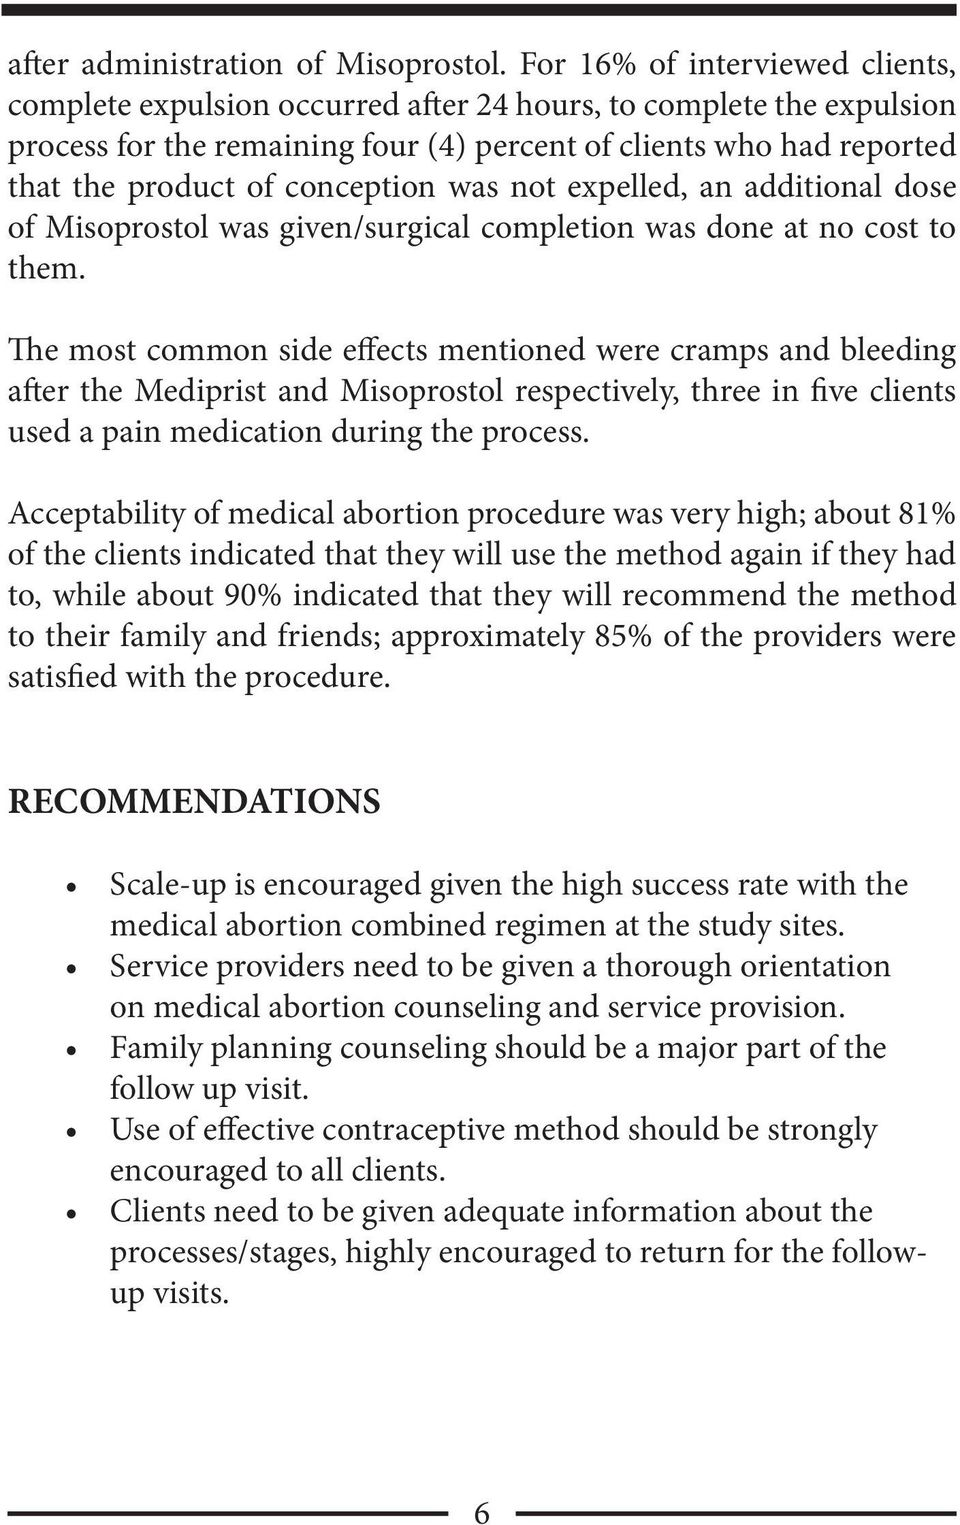 INTRODUCTION OF MEDICAL ABORTION IN GHANA - PDF